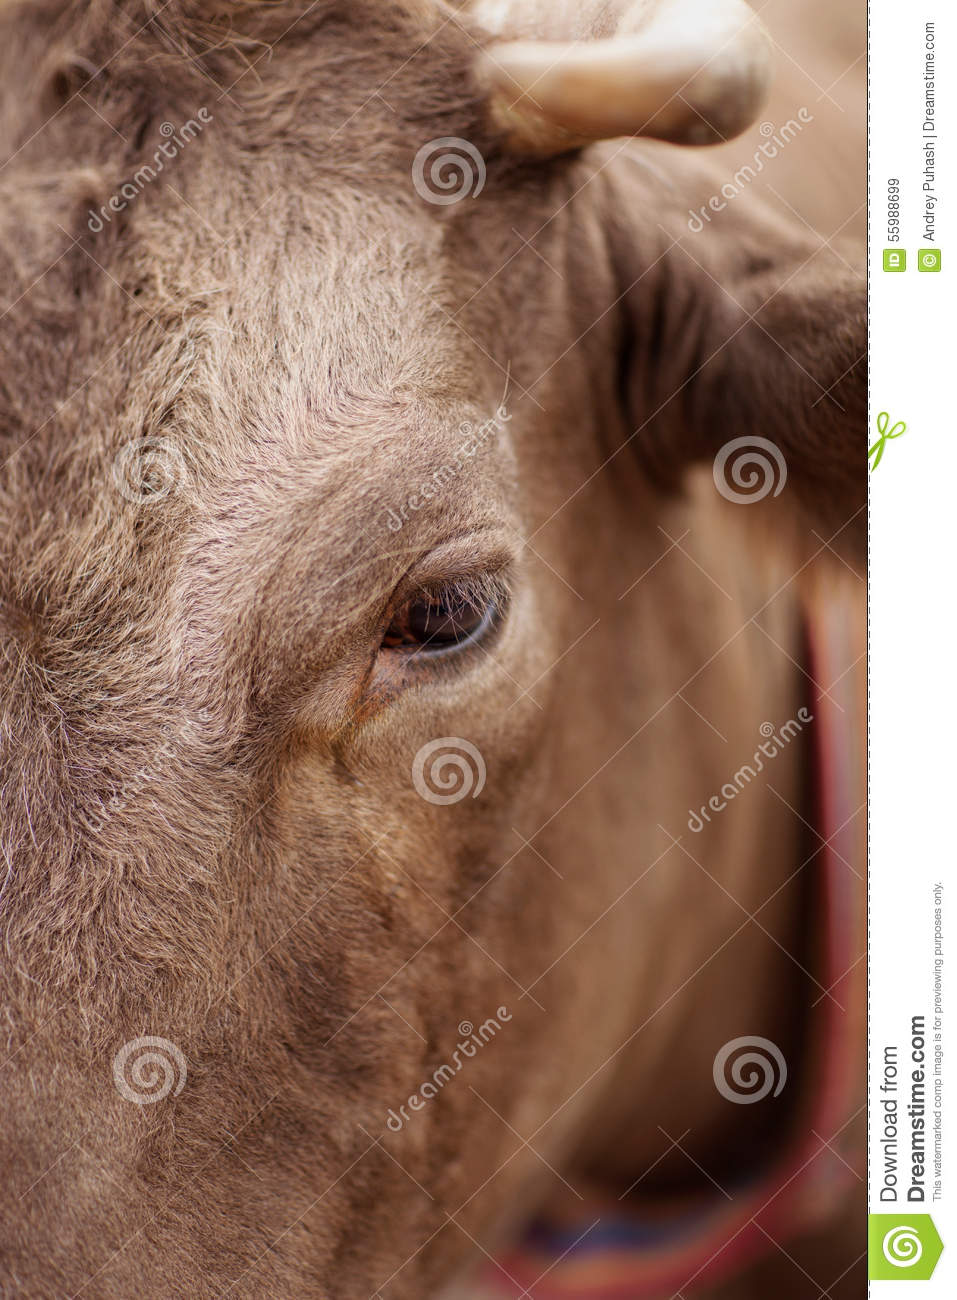 Large Eyes With Eyelashes A Cow And Bull Outdoors Stock Image